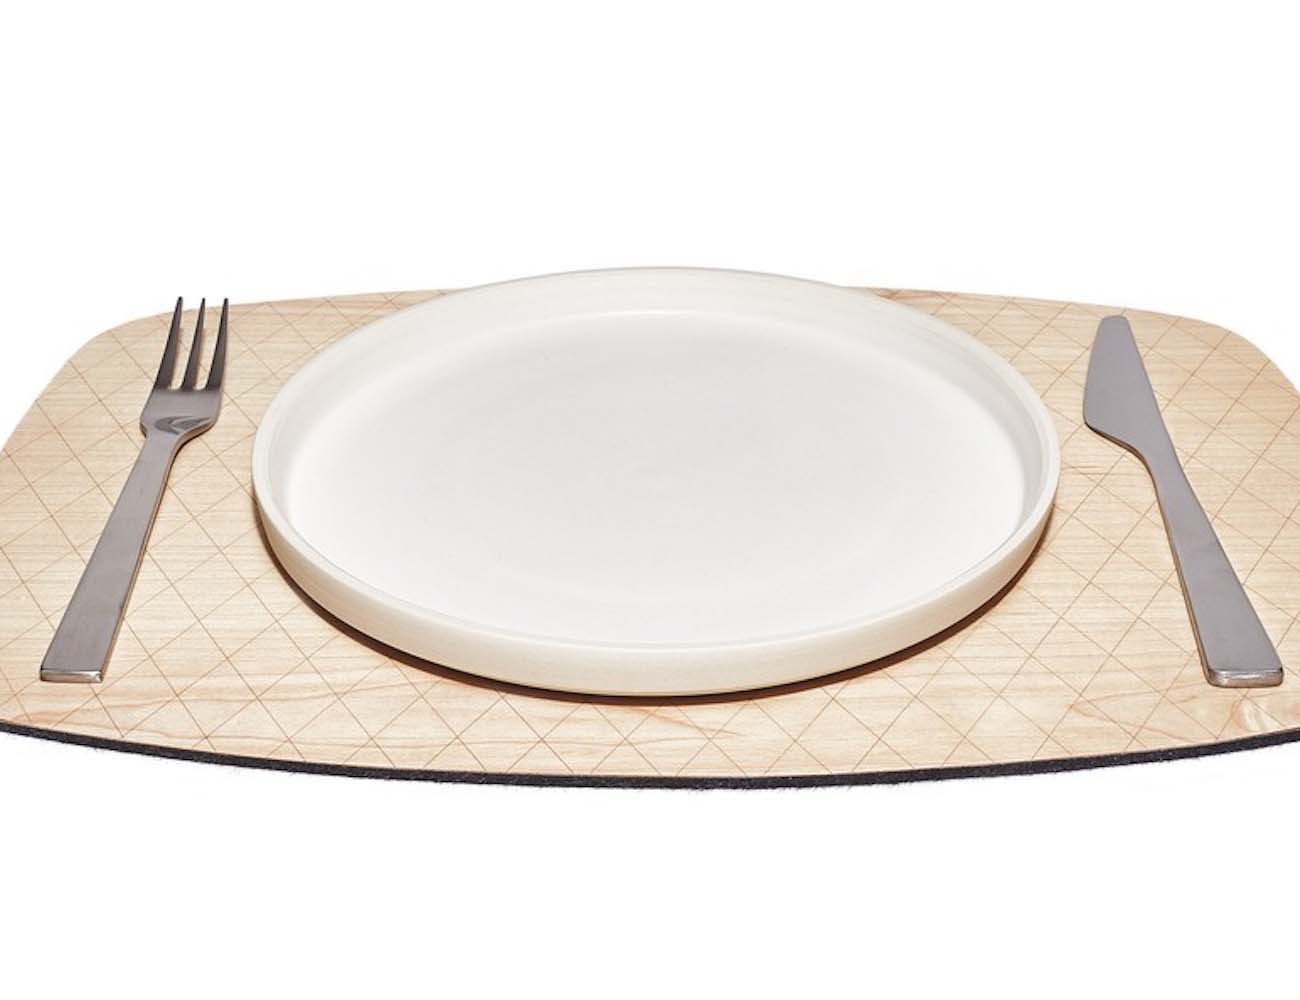 Grovemade Reversible Maple Placemat